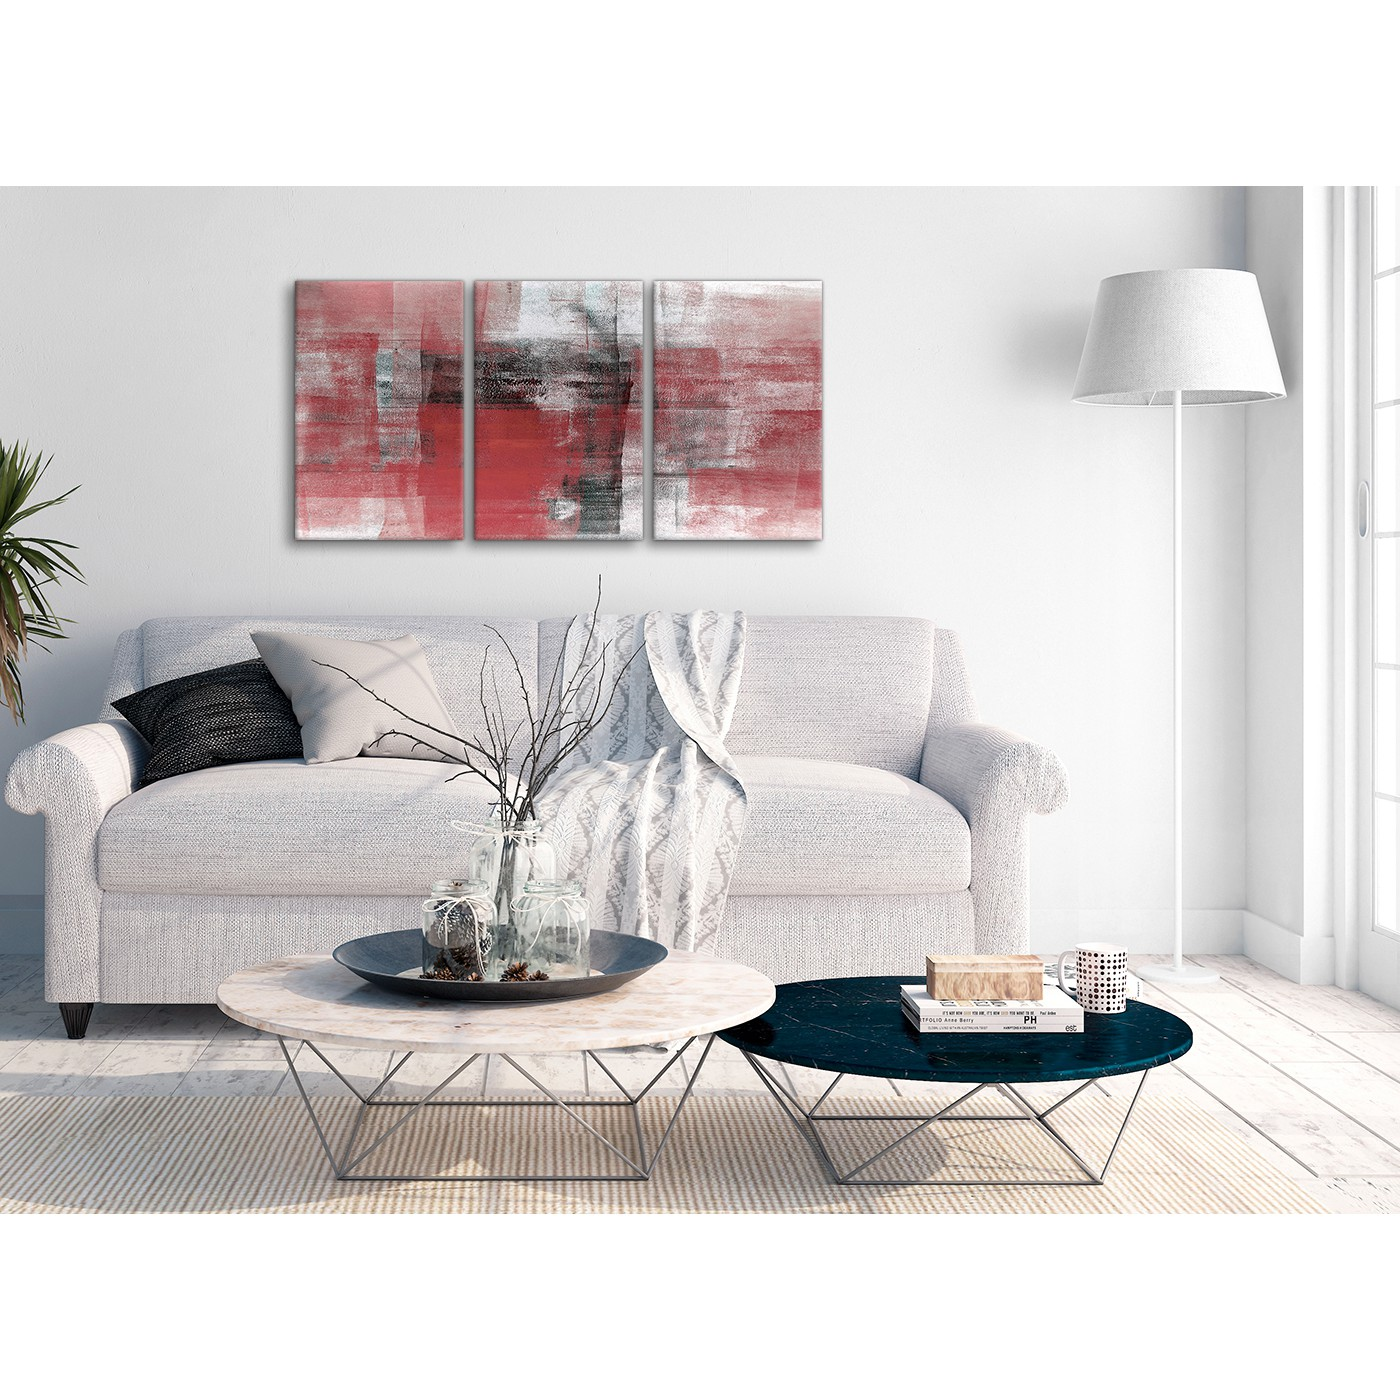 sofa paintings abstract average weight of a in kg 3 piece red black white painting bedroom canvas wall art